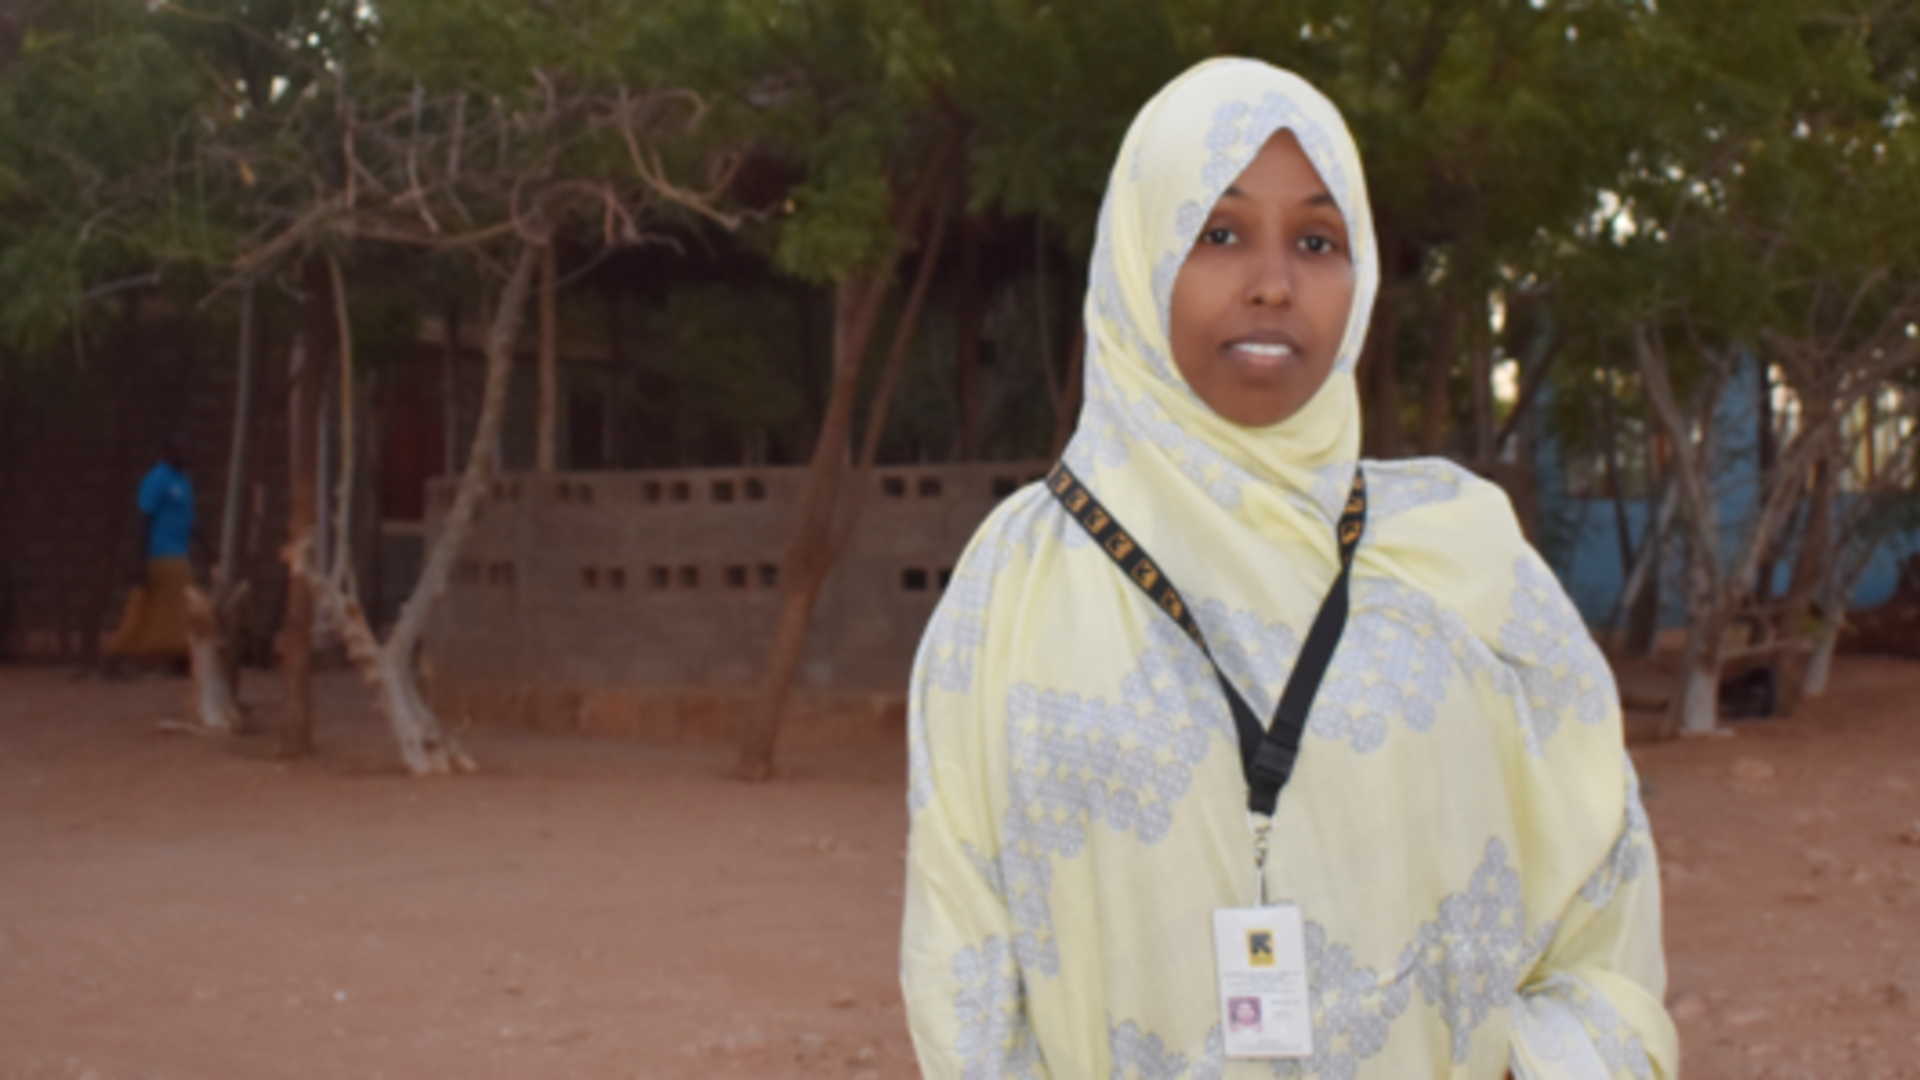 Ifrah, a Women's Protection and Empowerment Program Officer for the IRC in Ethiopia